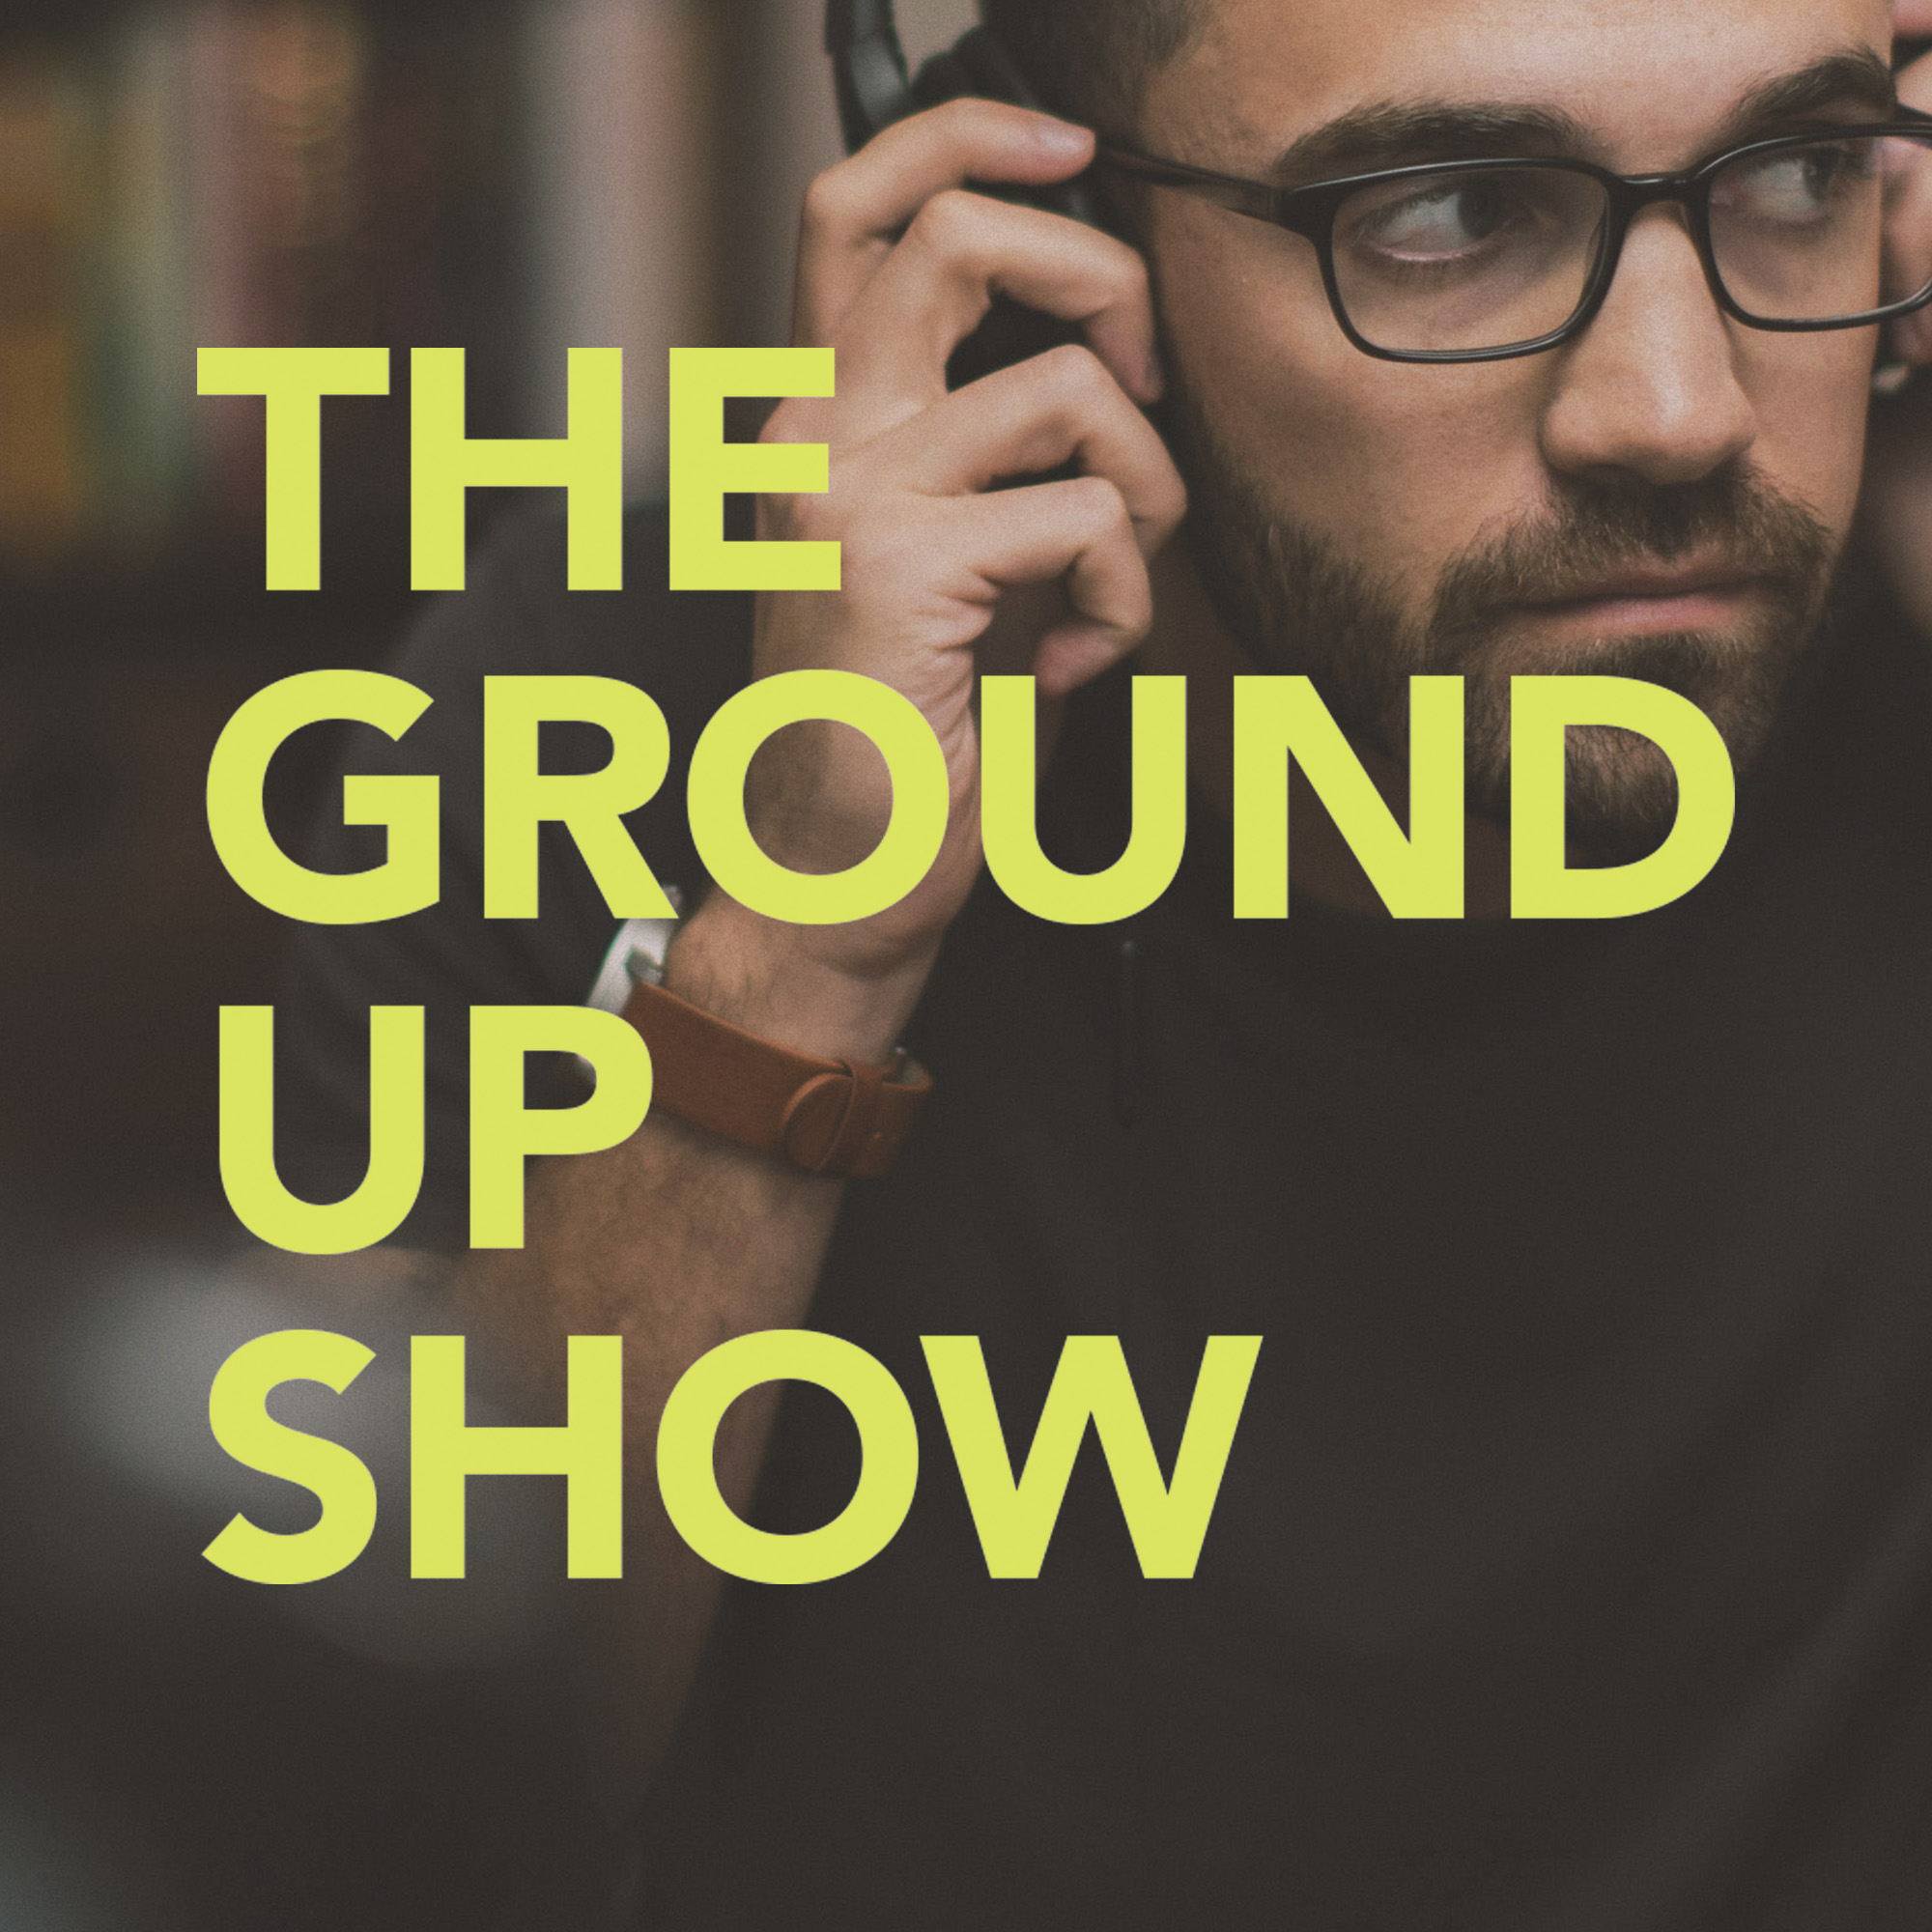 The Ground Up Show show art